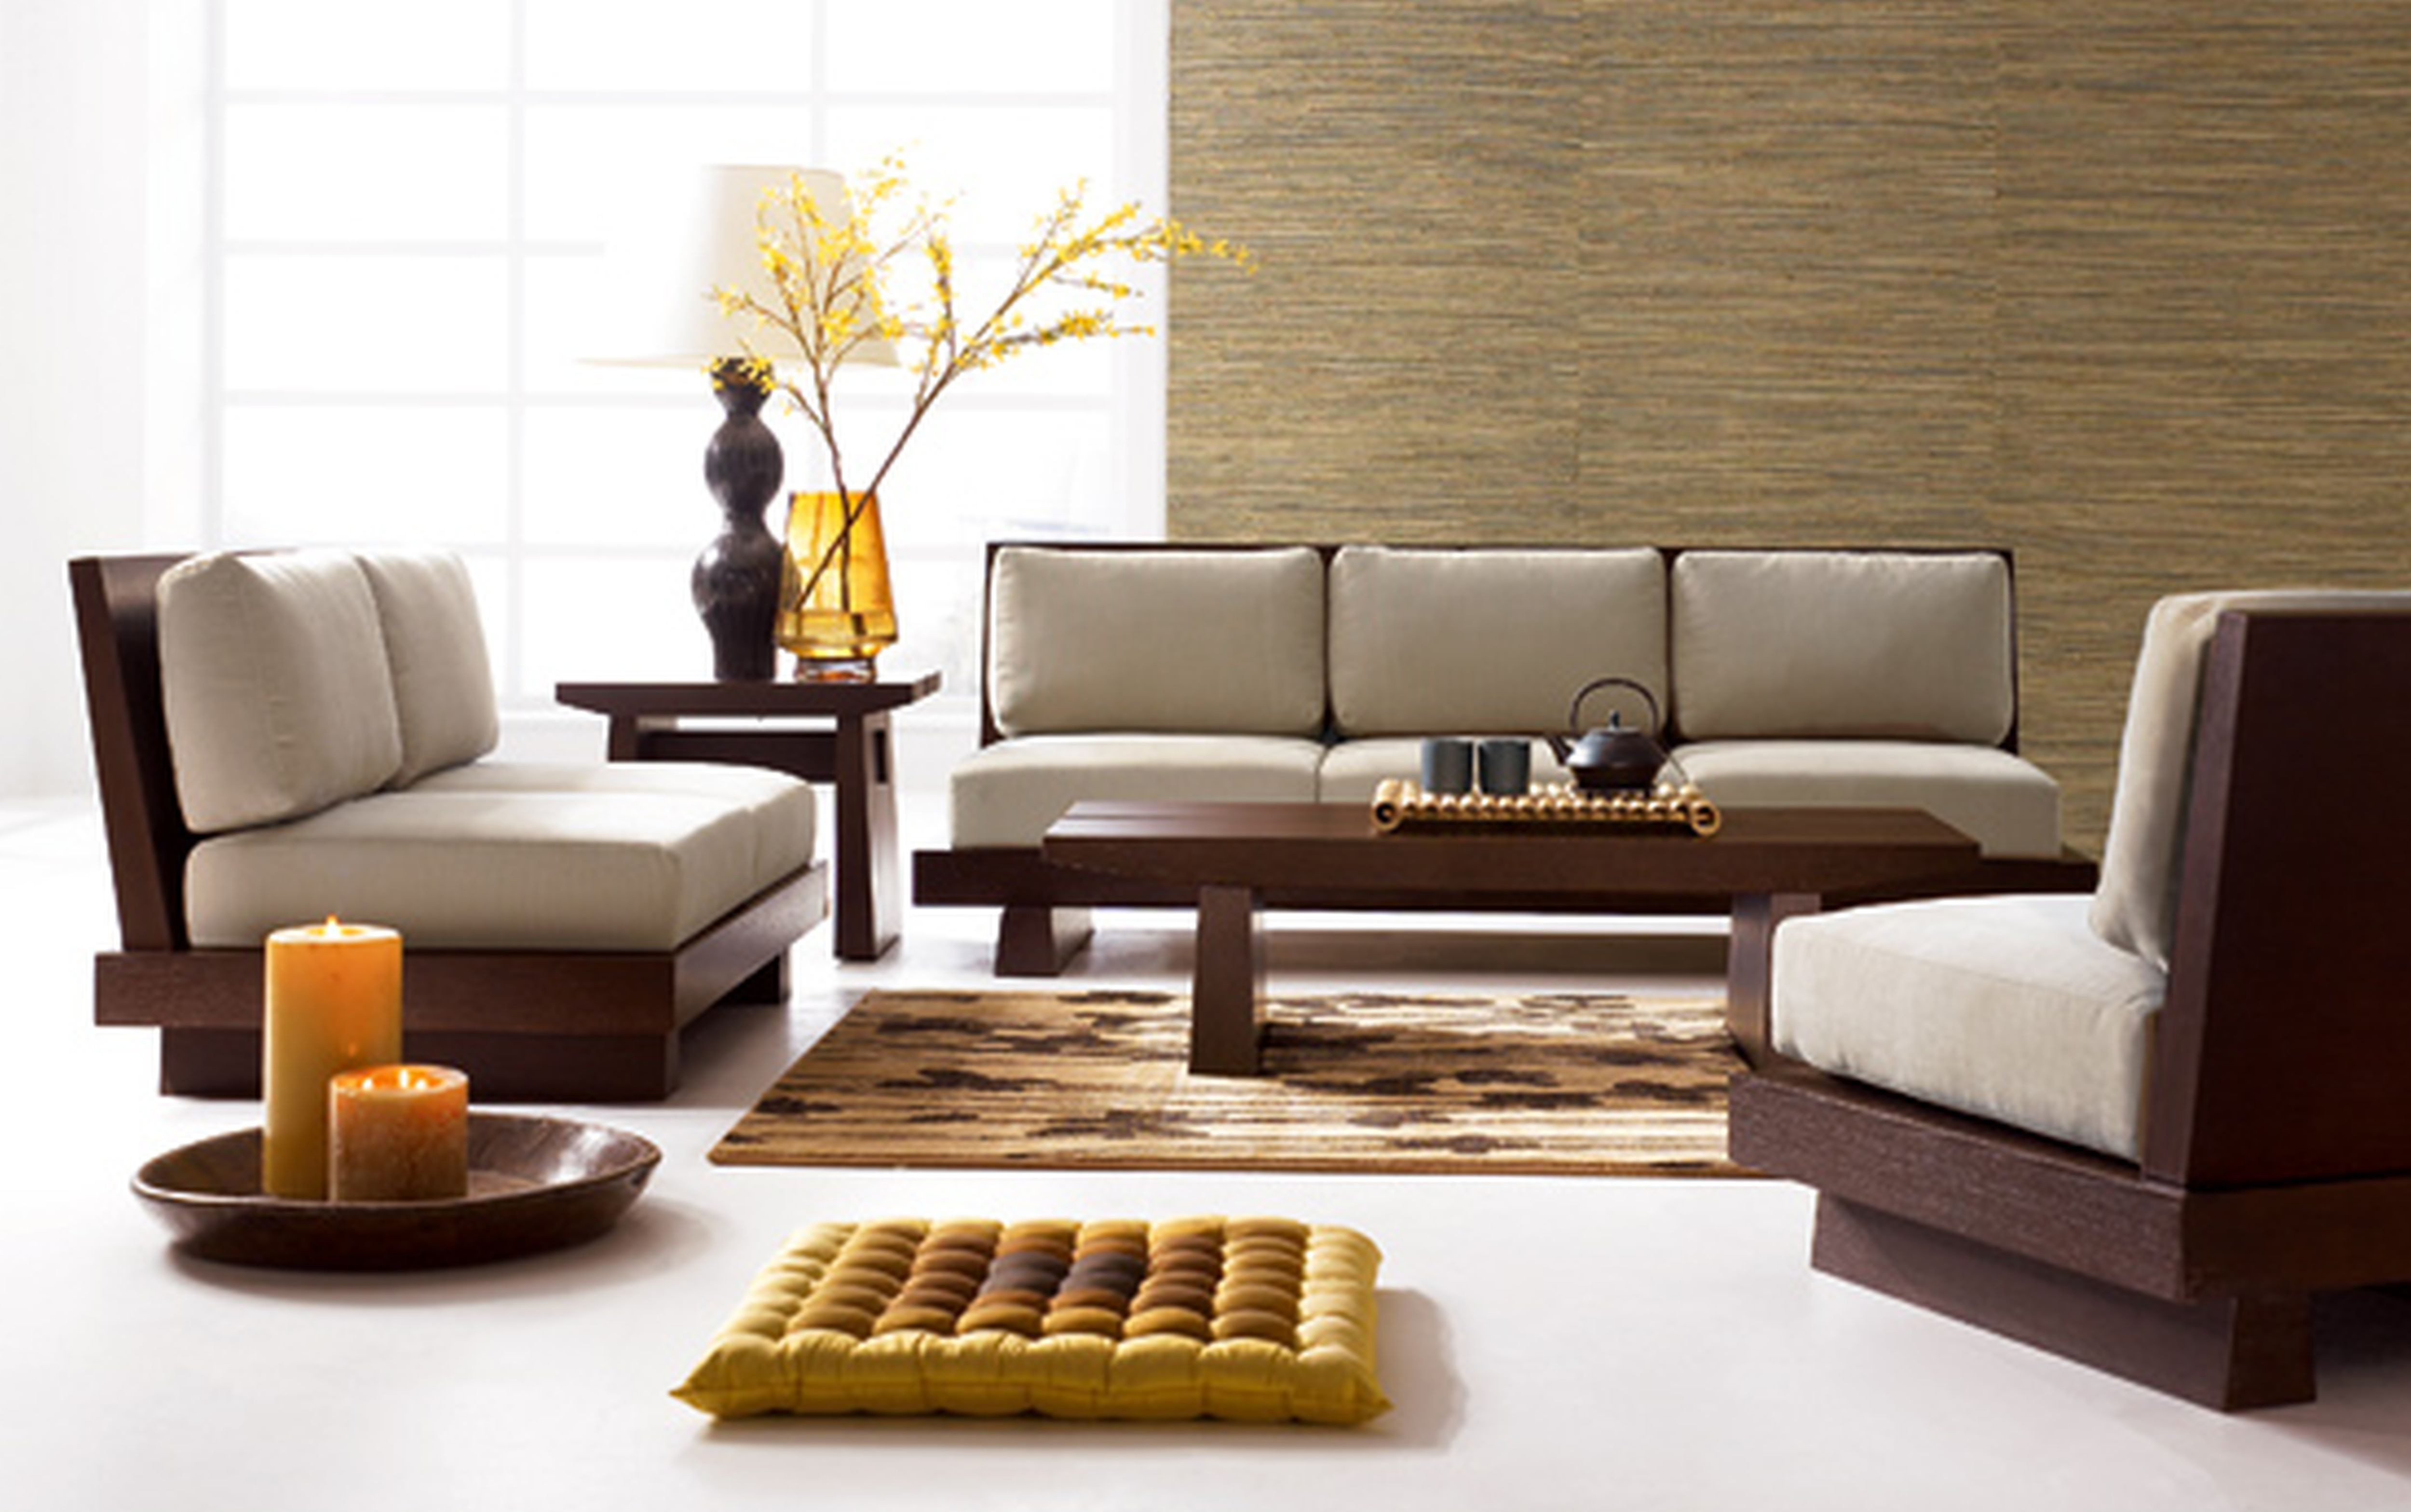 Best ideas about Furniture Ideas For Living Room . Save or Pin Modern Living Room Furniture Ideas — MODERN HOUSE PLAN Now.